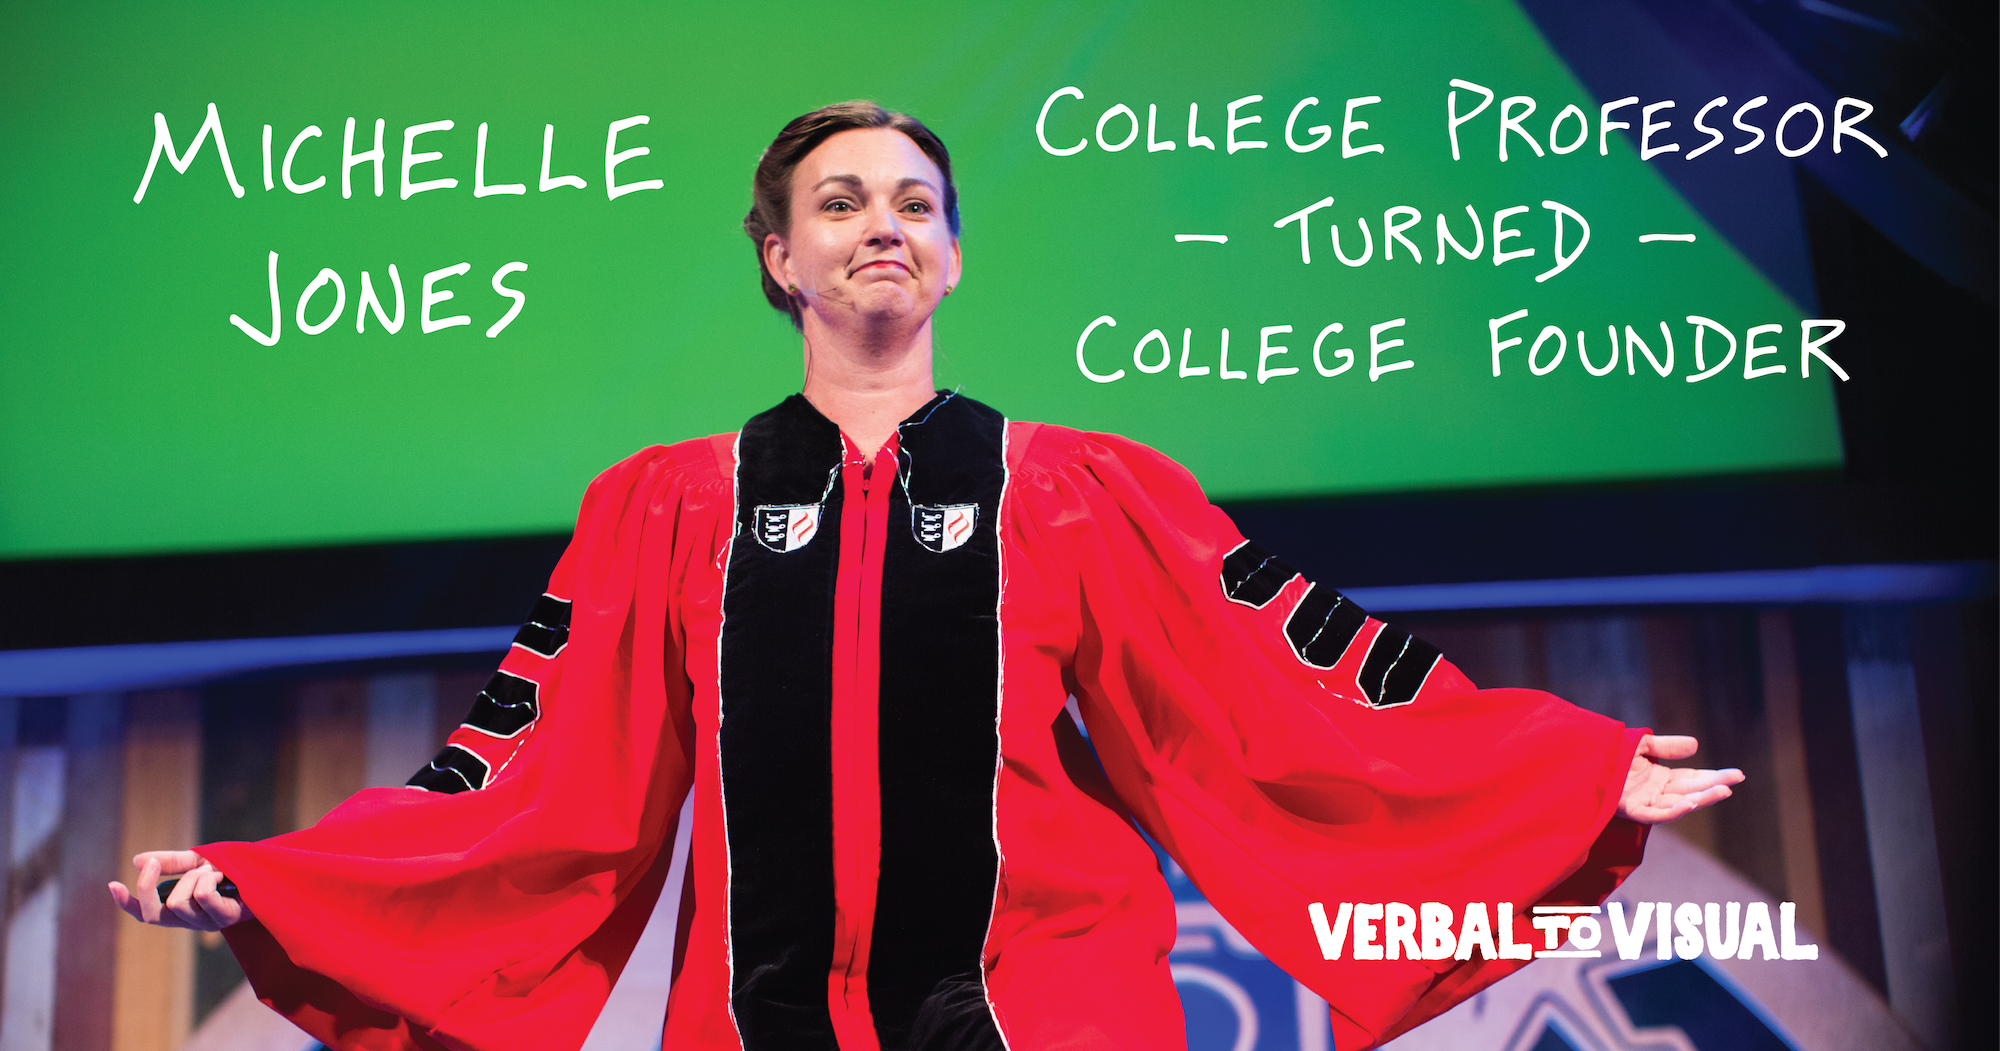 Michelle Jones: College Professor Turned College Founder - Verbal To Visual Podcast with Doug Neill